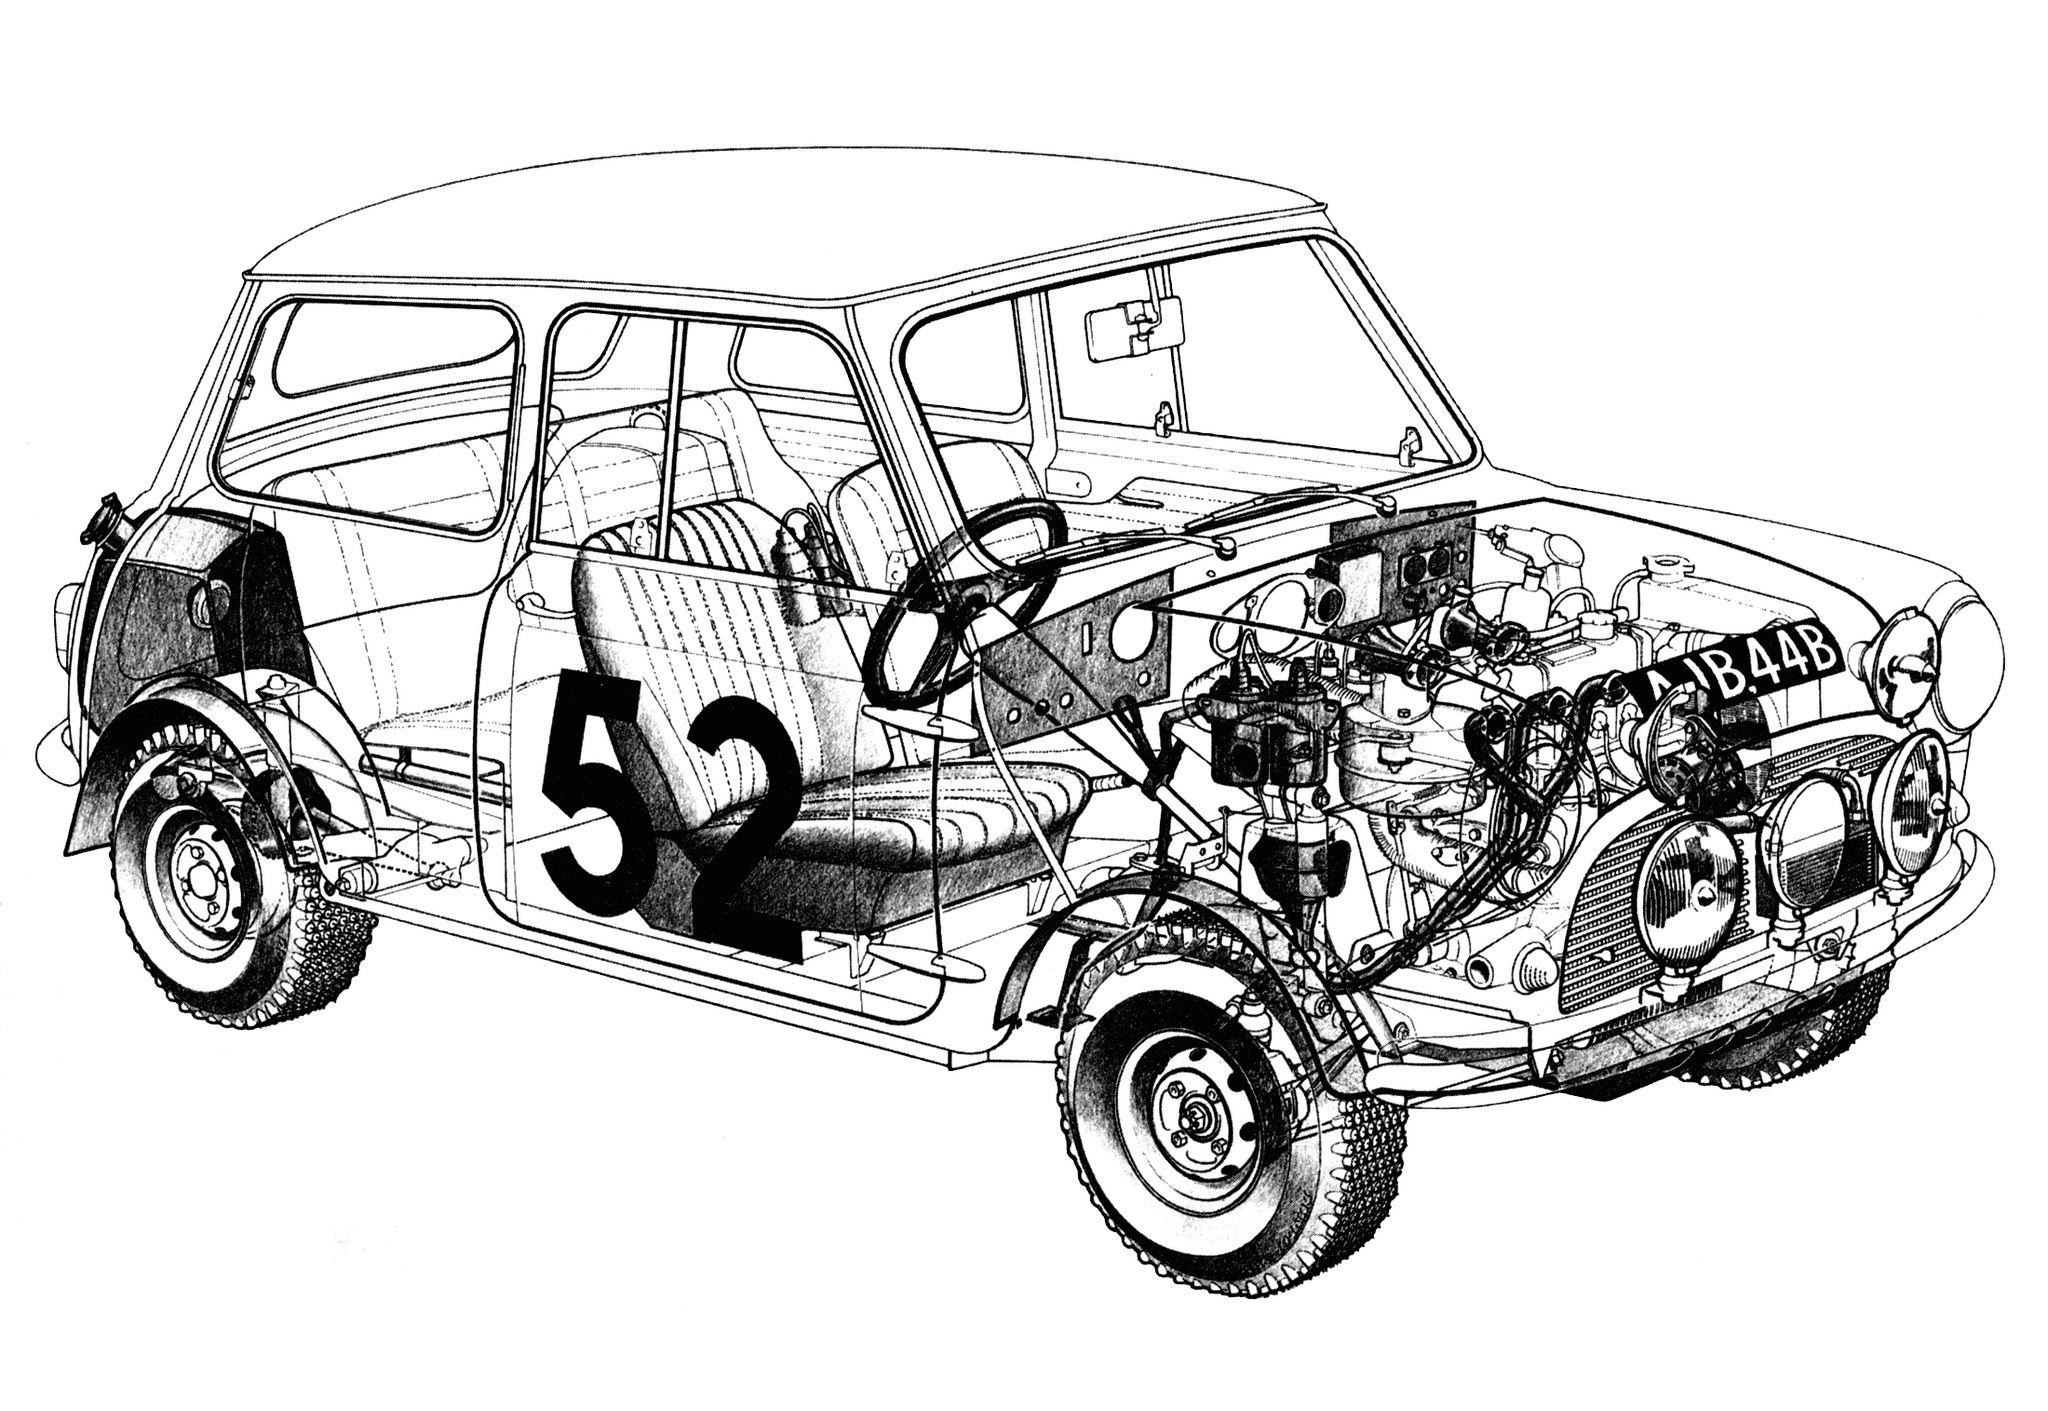 hight resolution of this is a cutaway of the now legendary 52 mini cooper s driven to victory at the 1965 monte carlo rallye by the timo m kinen paul easter team